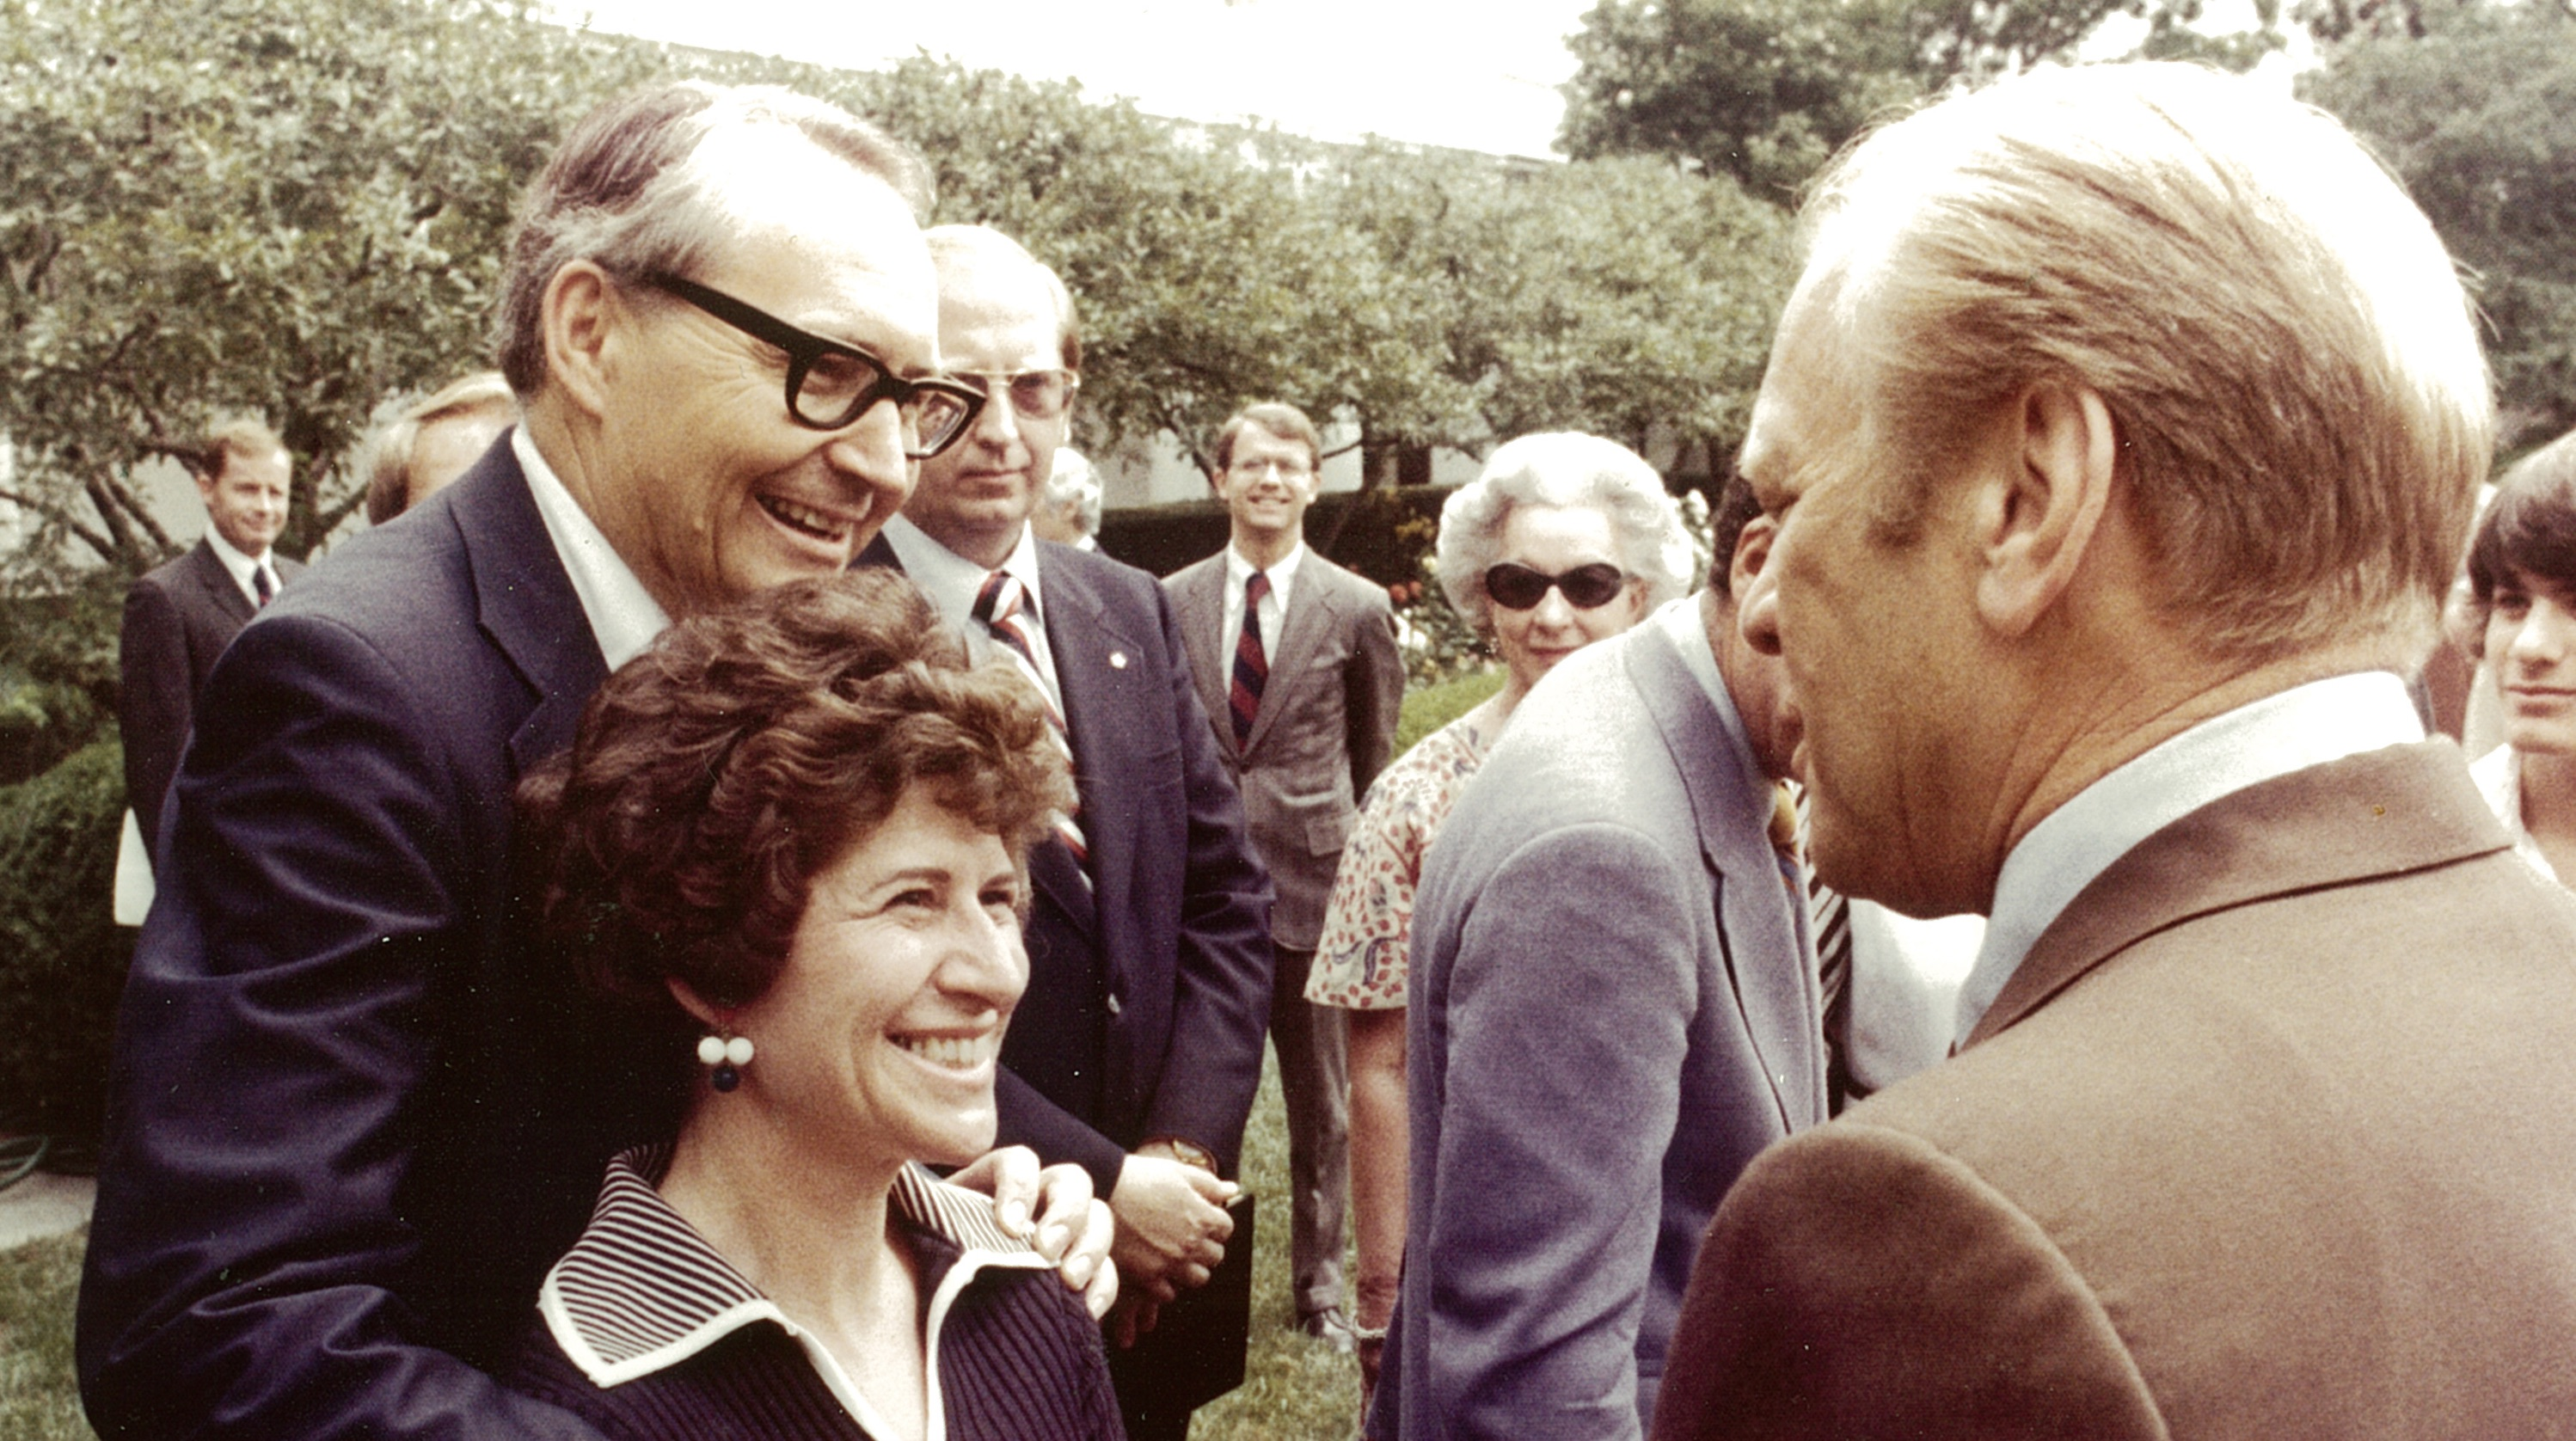 Elder L. Tom and Sister Barbara Perry meet U.S. President Gerald R. Ford at a Rose Garden reception in 1976.